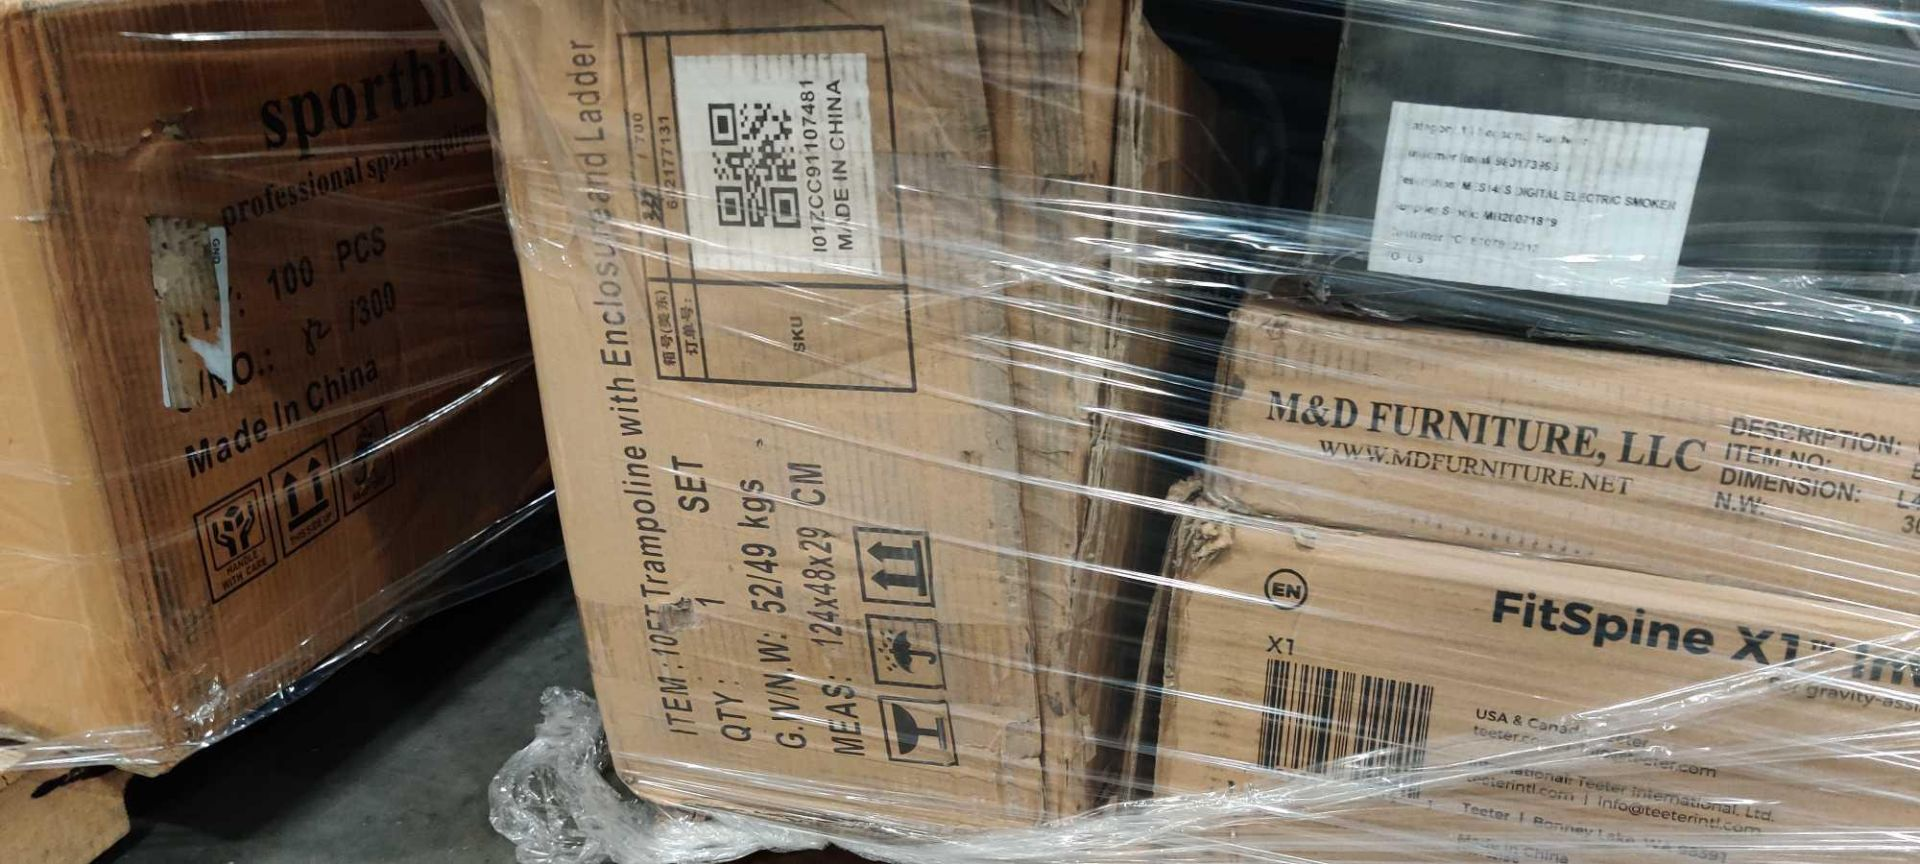 Two Pallets - Image 21 of 22